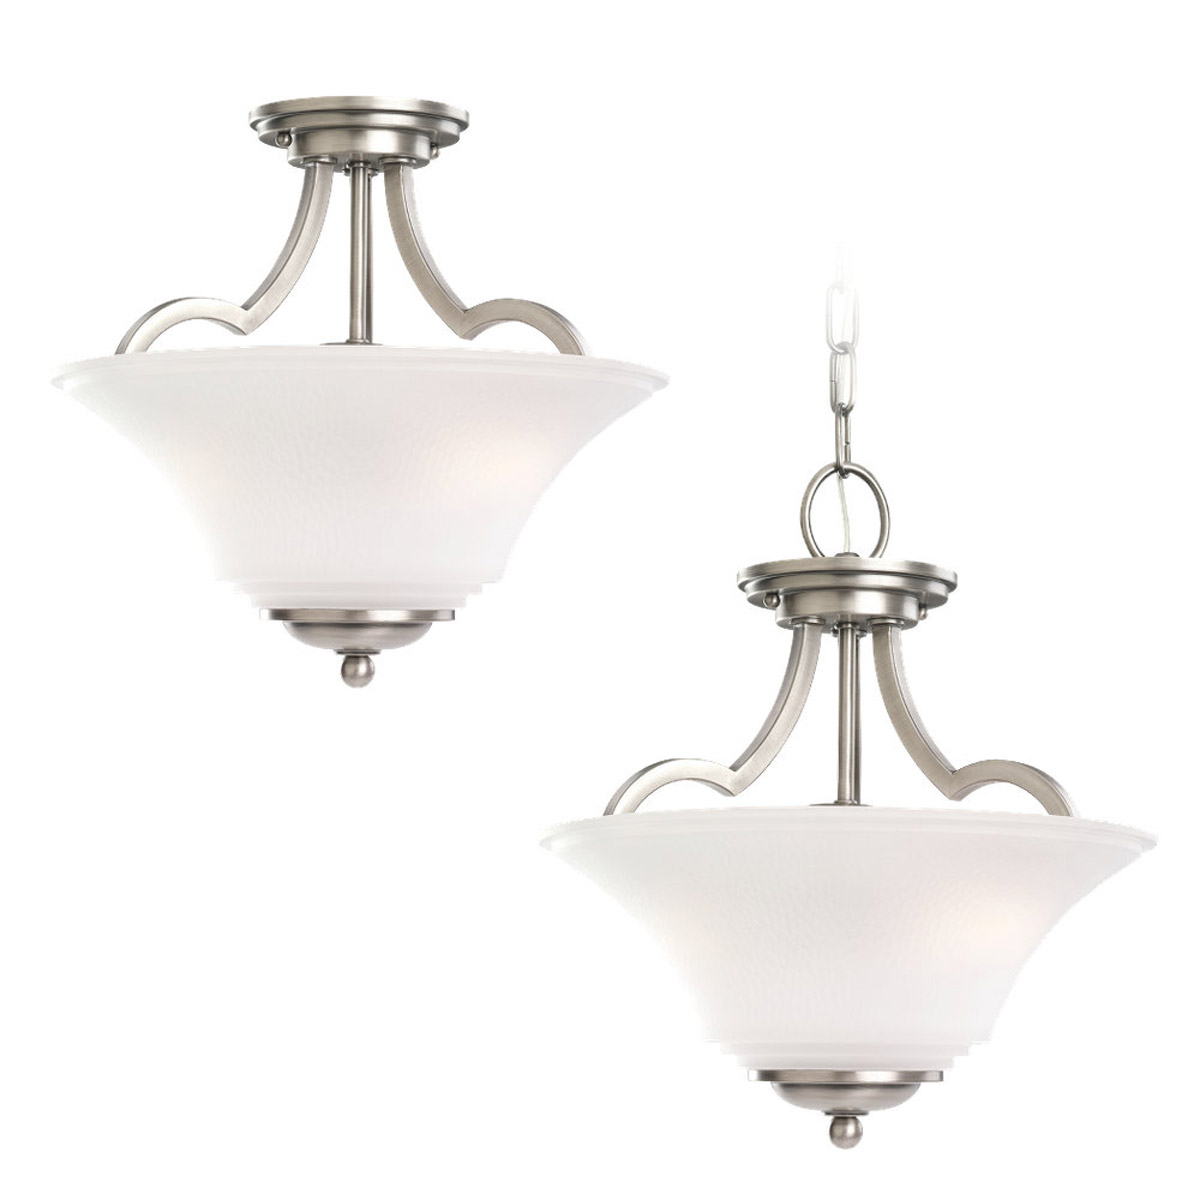 Sea Gull Lighting Somerton 2 Light Semi-Flush Mount in Antique Brushed Nickel 77375-965 photo